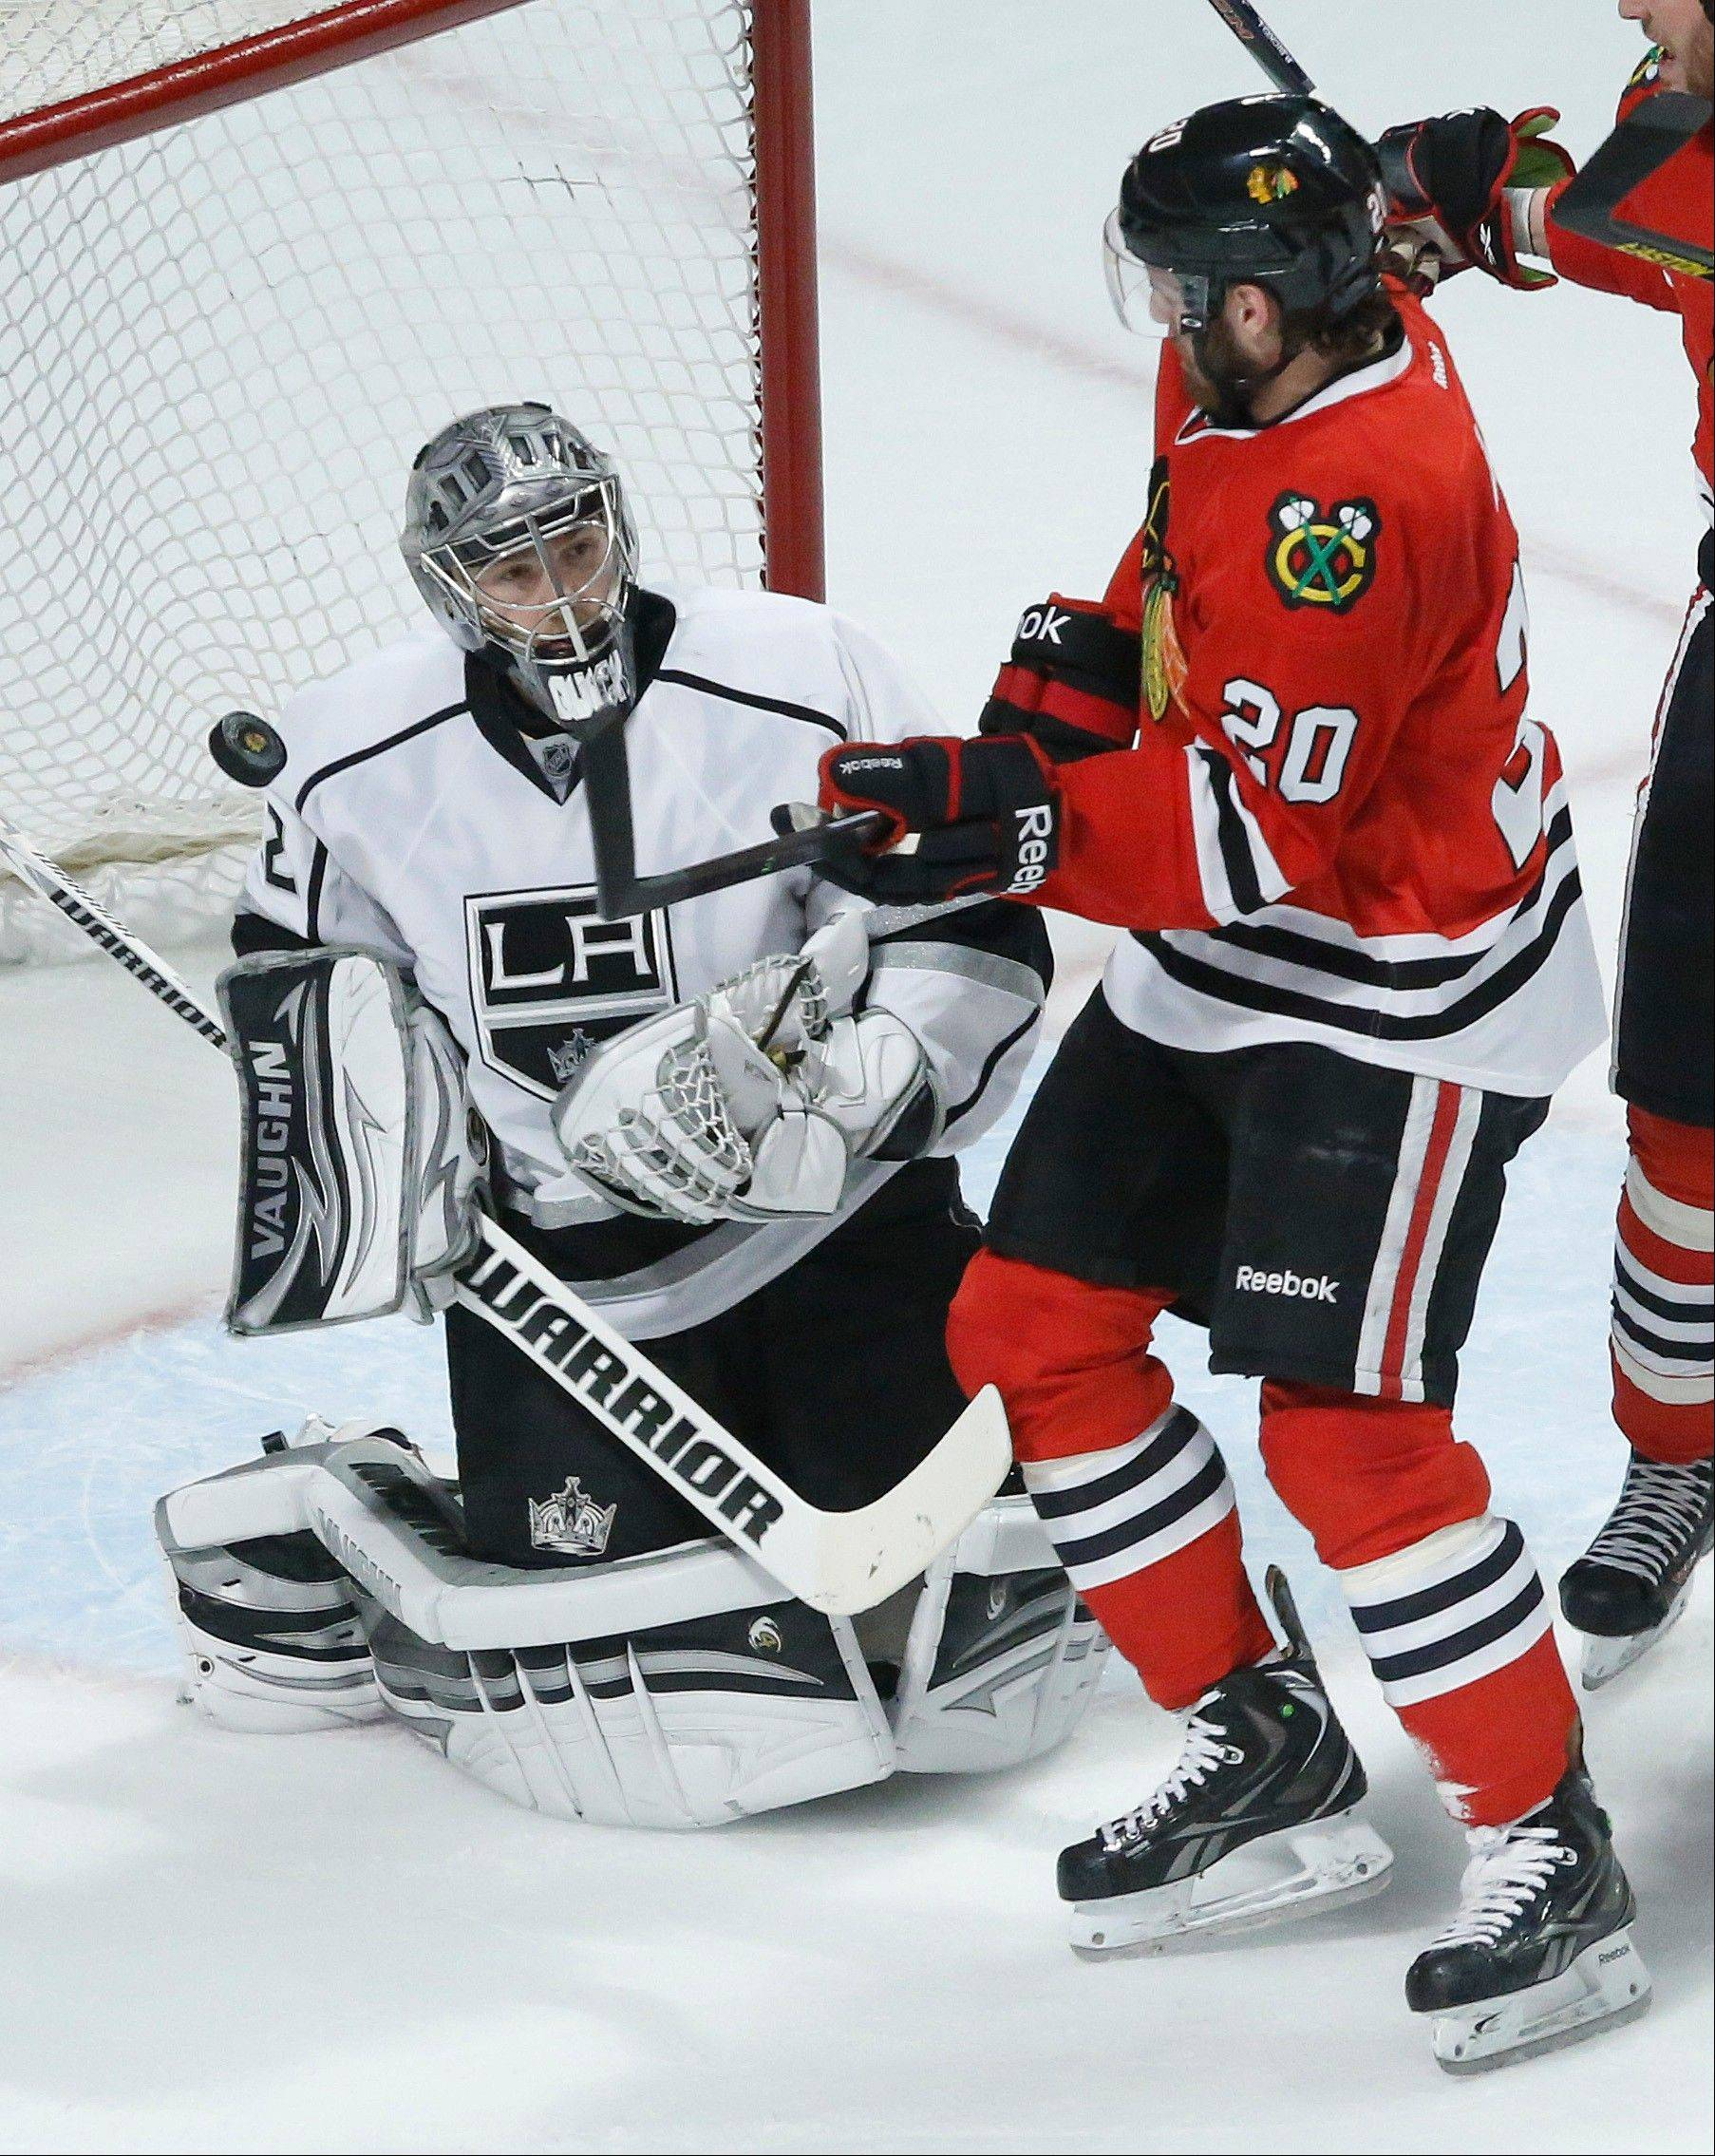 Los Angeles Kings goalie Jonathan Quick blocks a shot by Brandon Saad of the Blackhawks in Game 1 of the Western Conference finals.